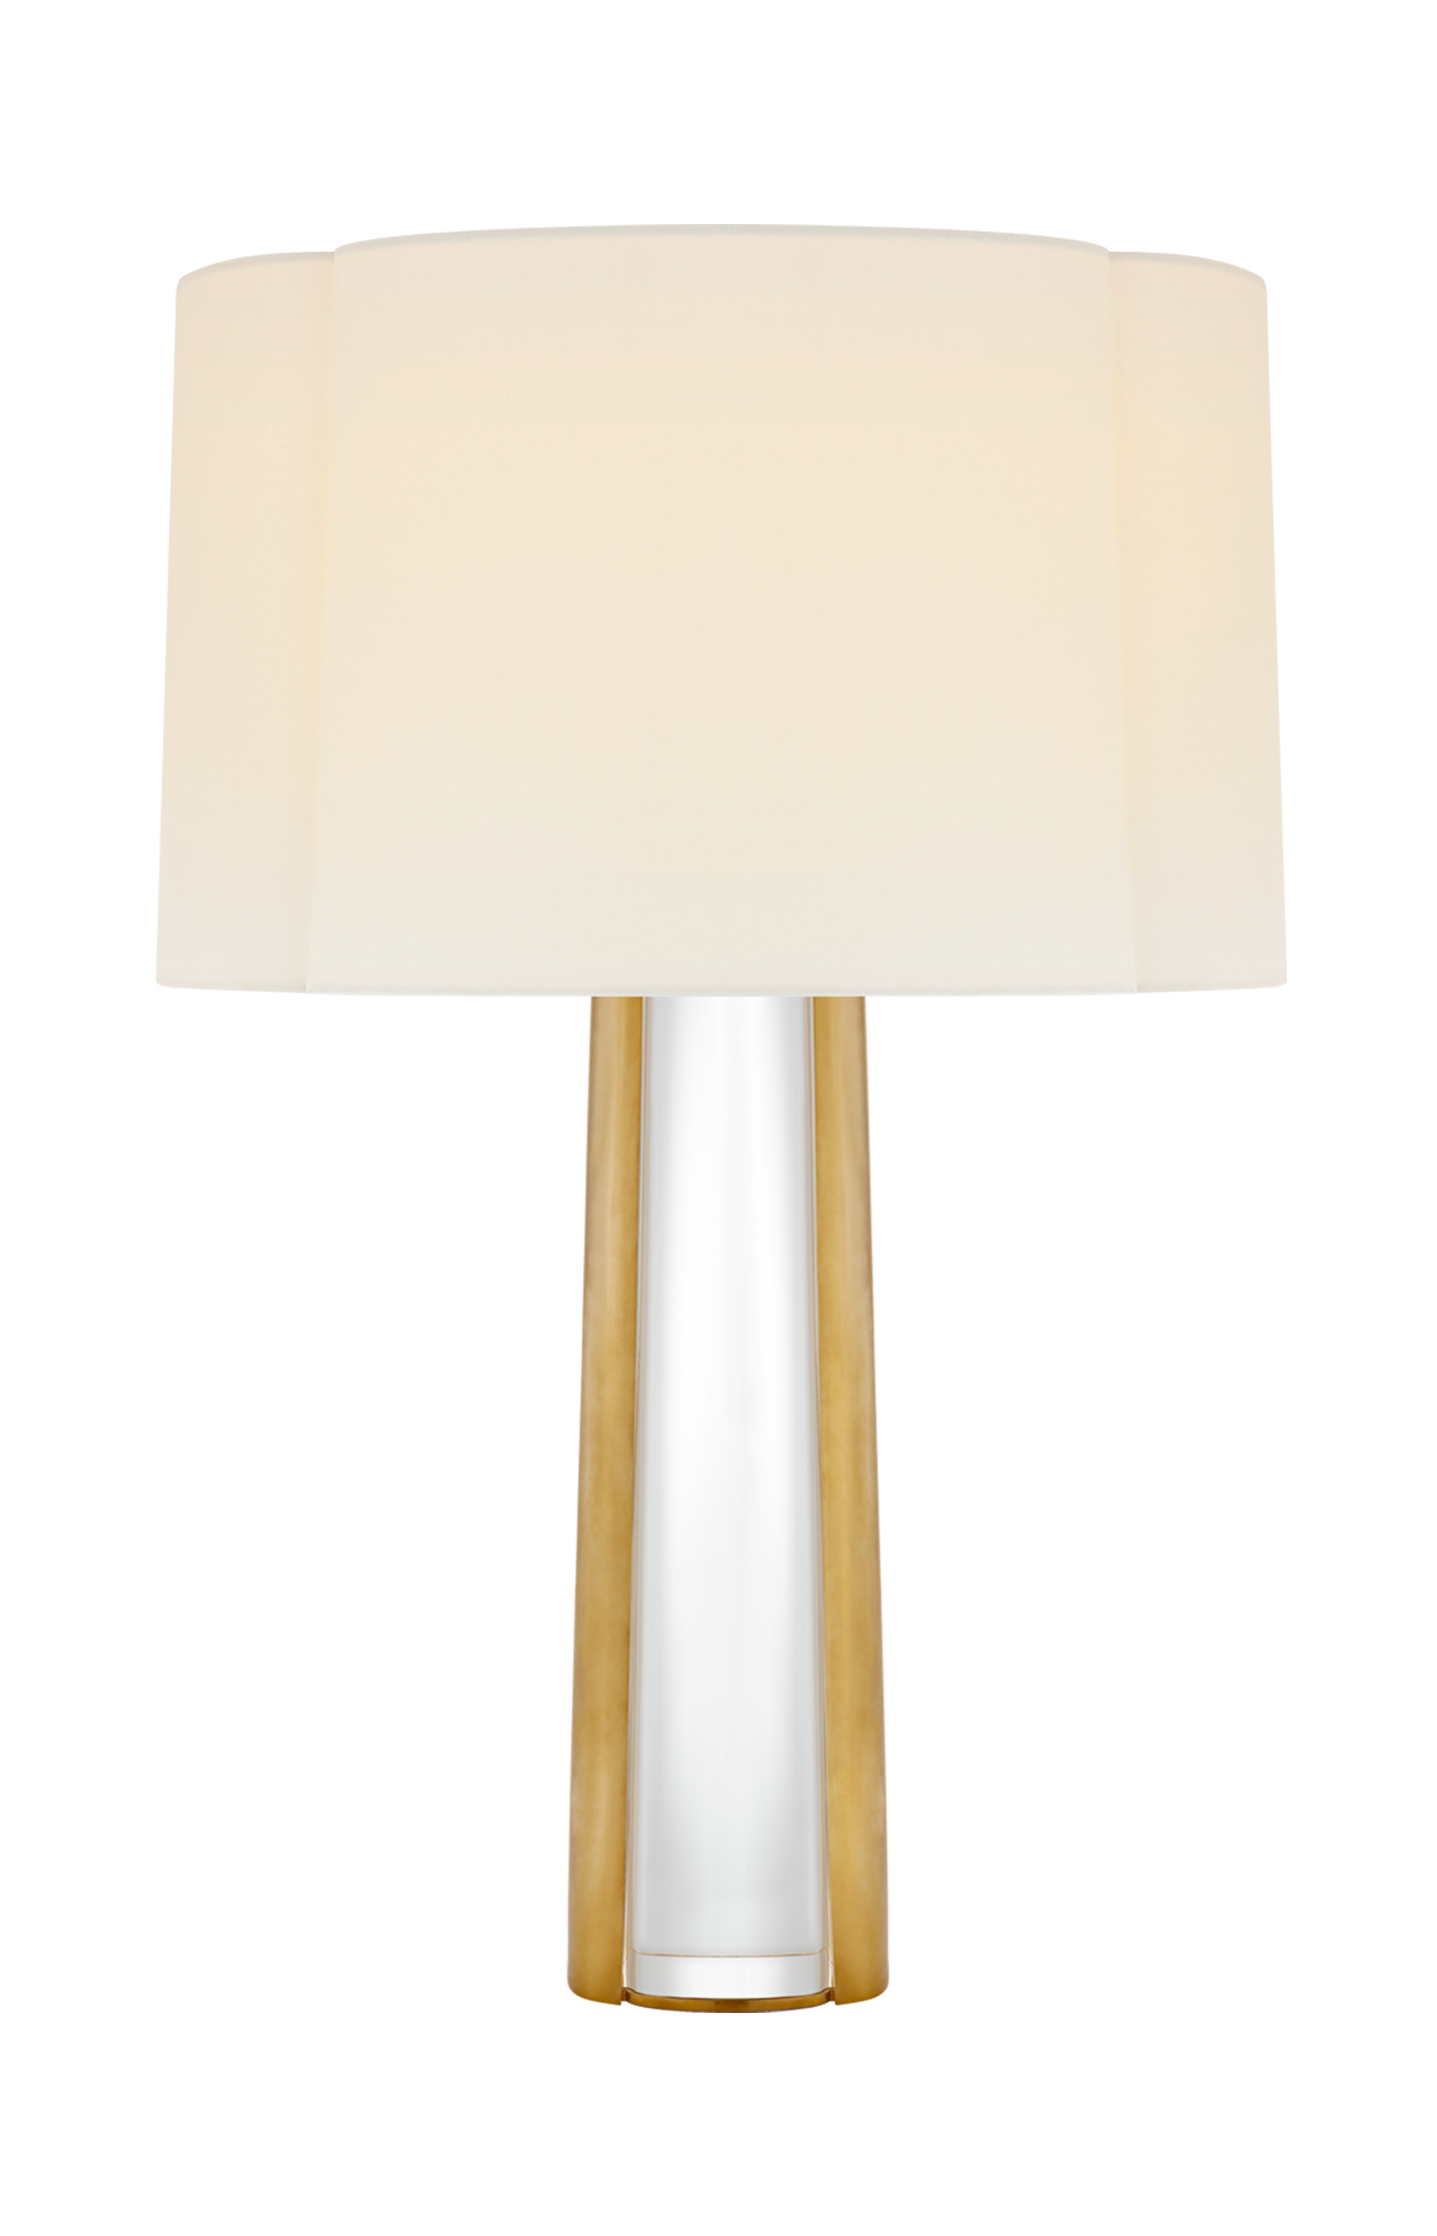 Thoreau Medium Table Lamp Lamp Table Lamp Linen Shades Crystal and brass table lamps